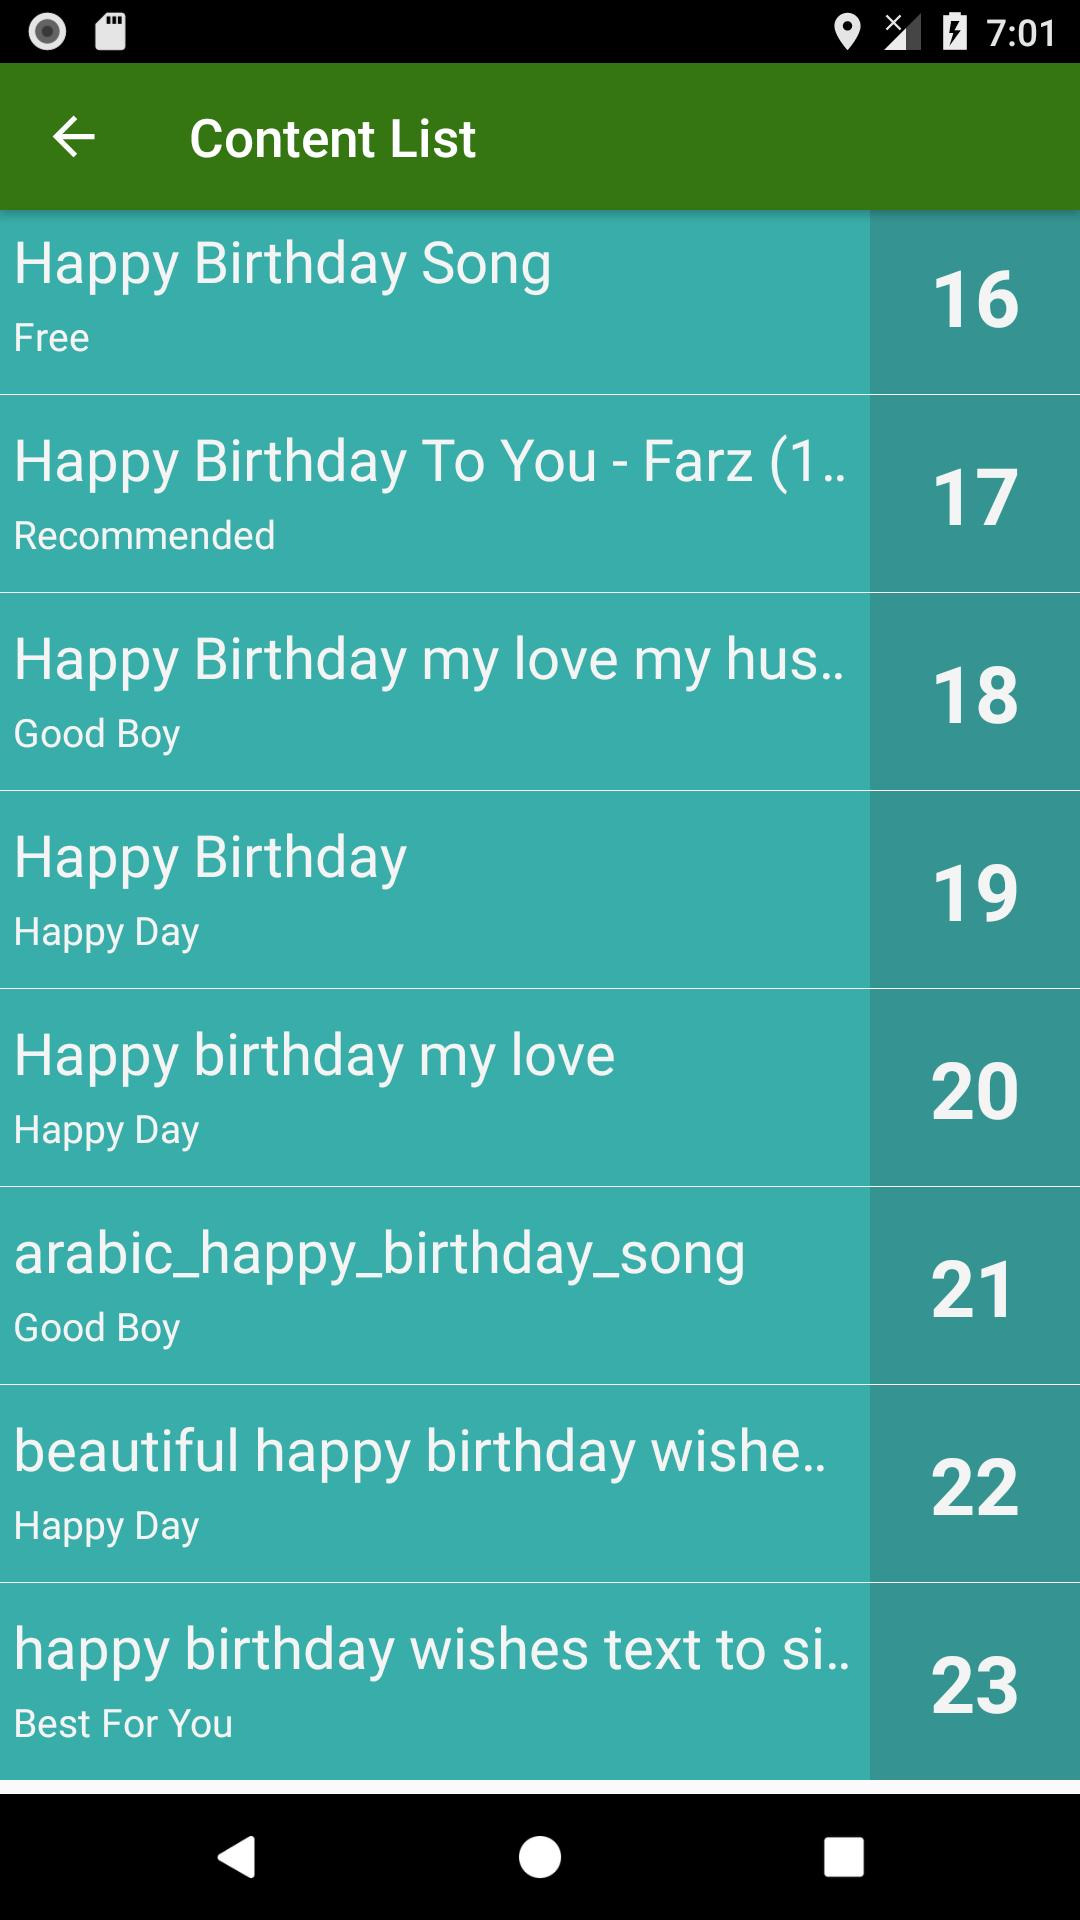 New Tamil Happy Birthday Songs Offline 2018 for Android